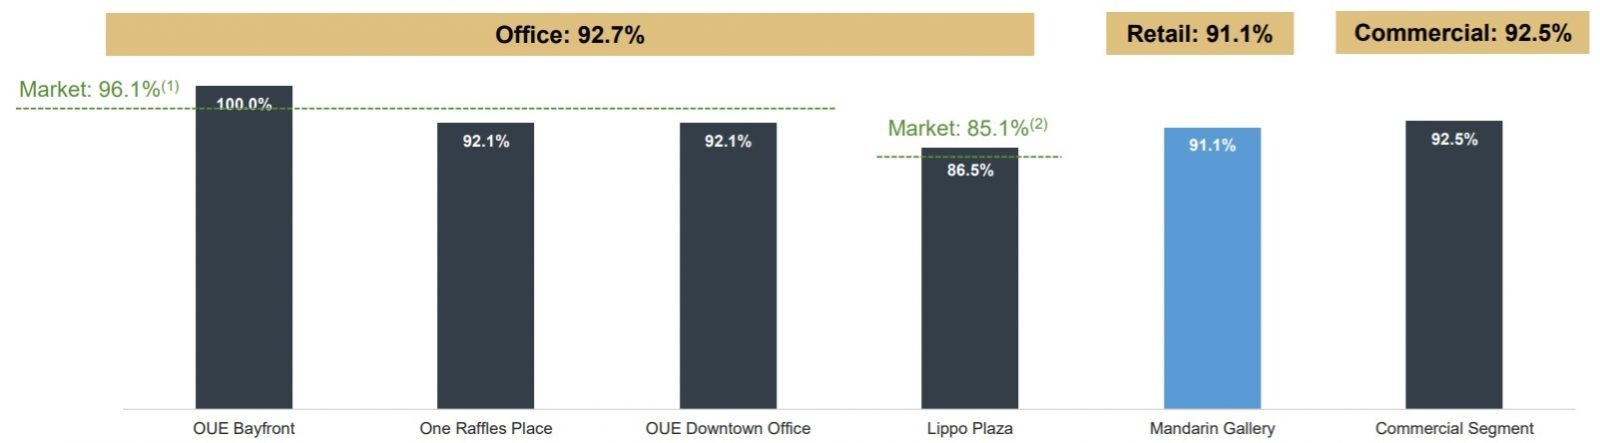 OUE Commercial REIT Commercial Occupancy 2H2020